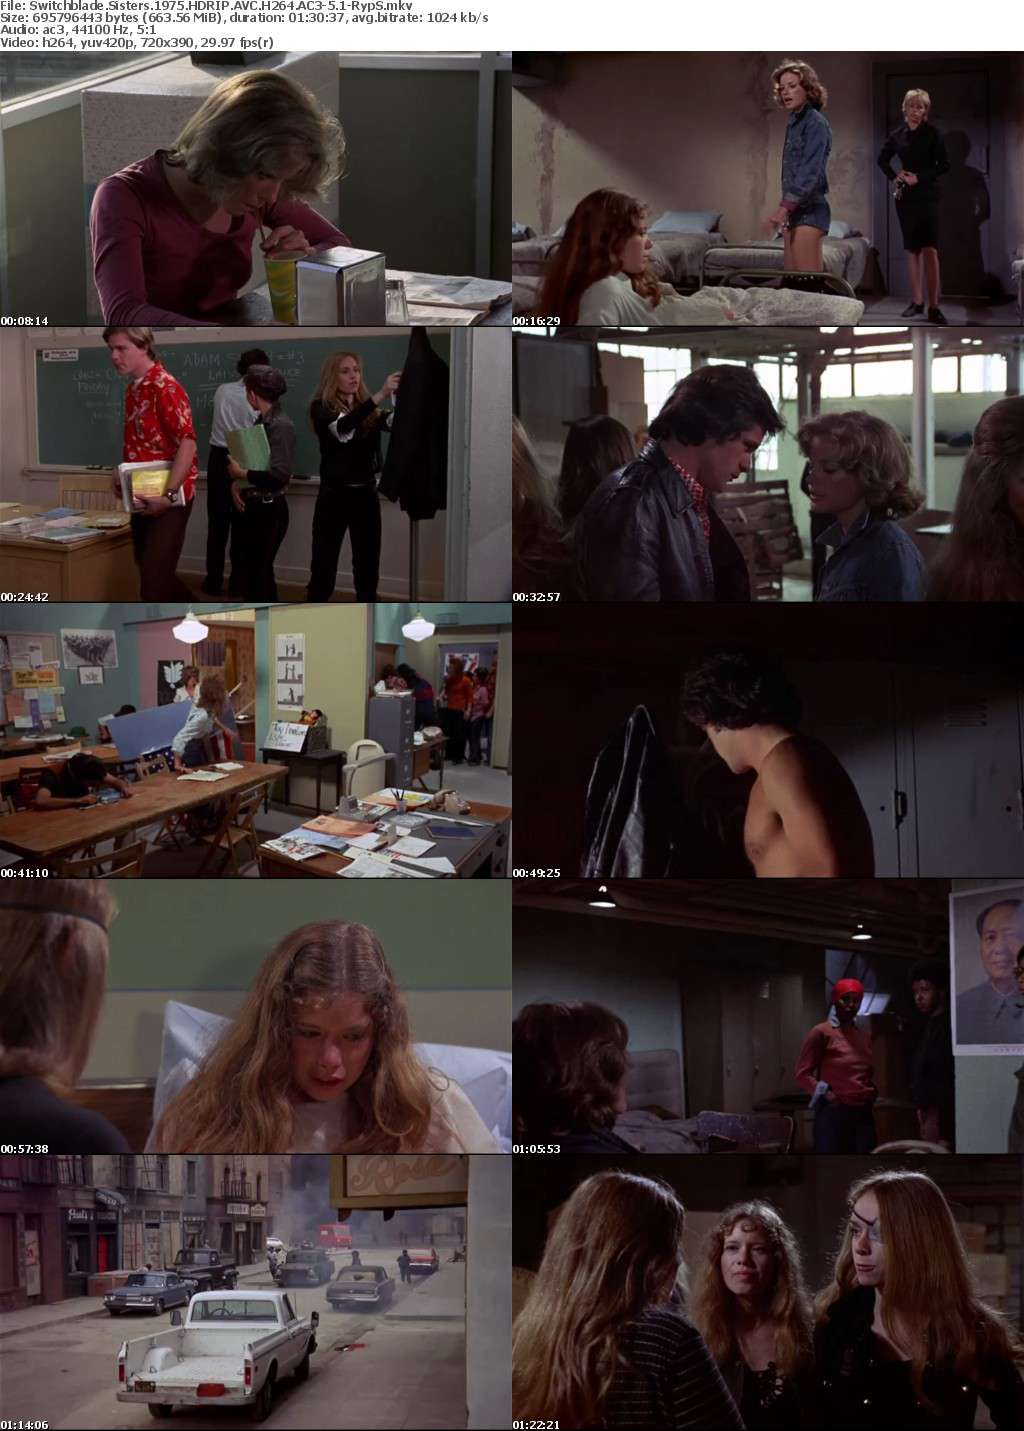 Switchblade Sisters 1975 HDRIP AVC H264 AC3-5 1-RypS